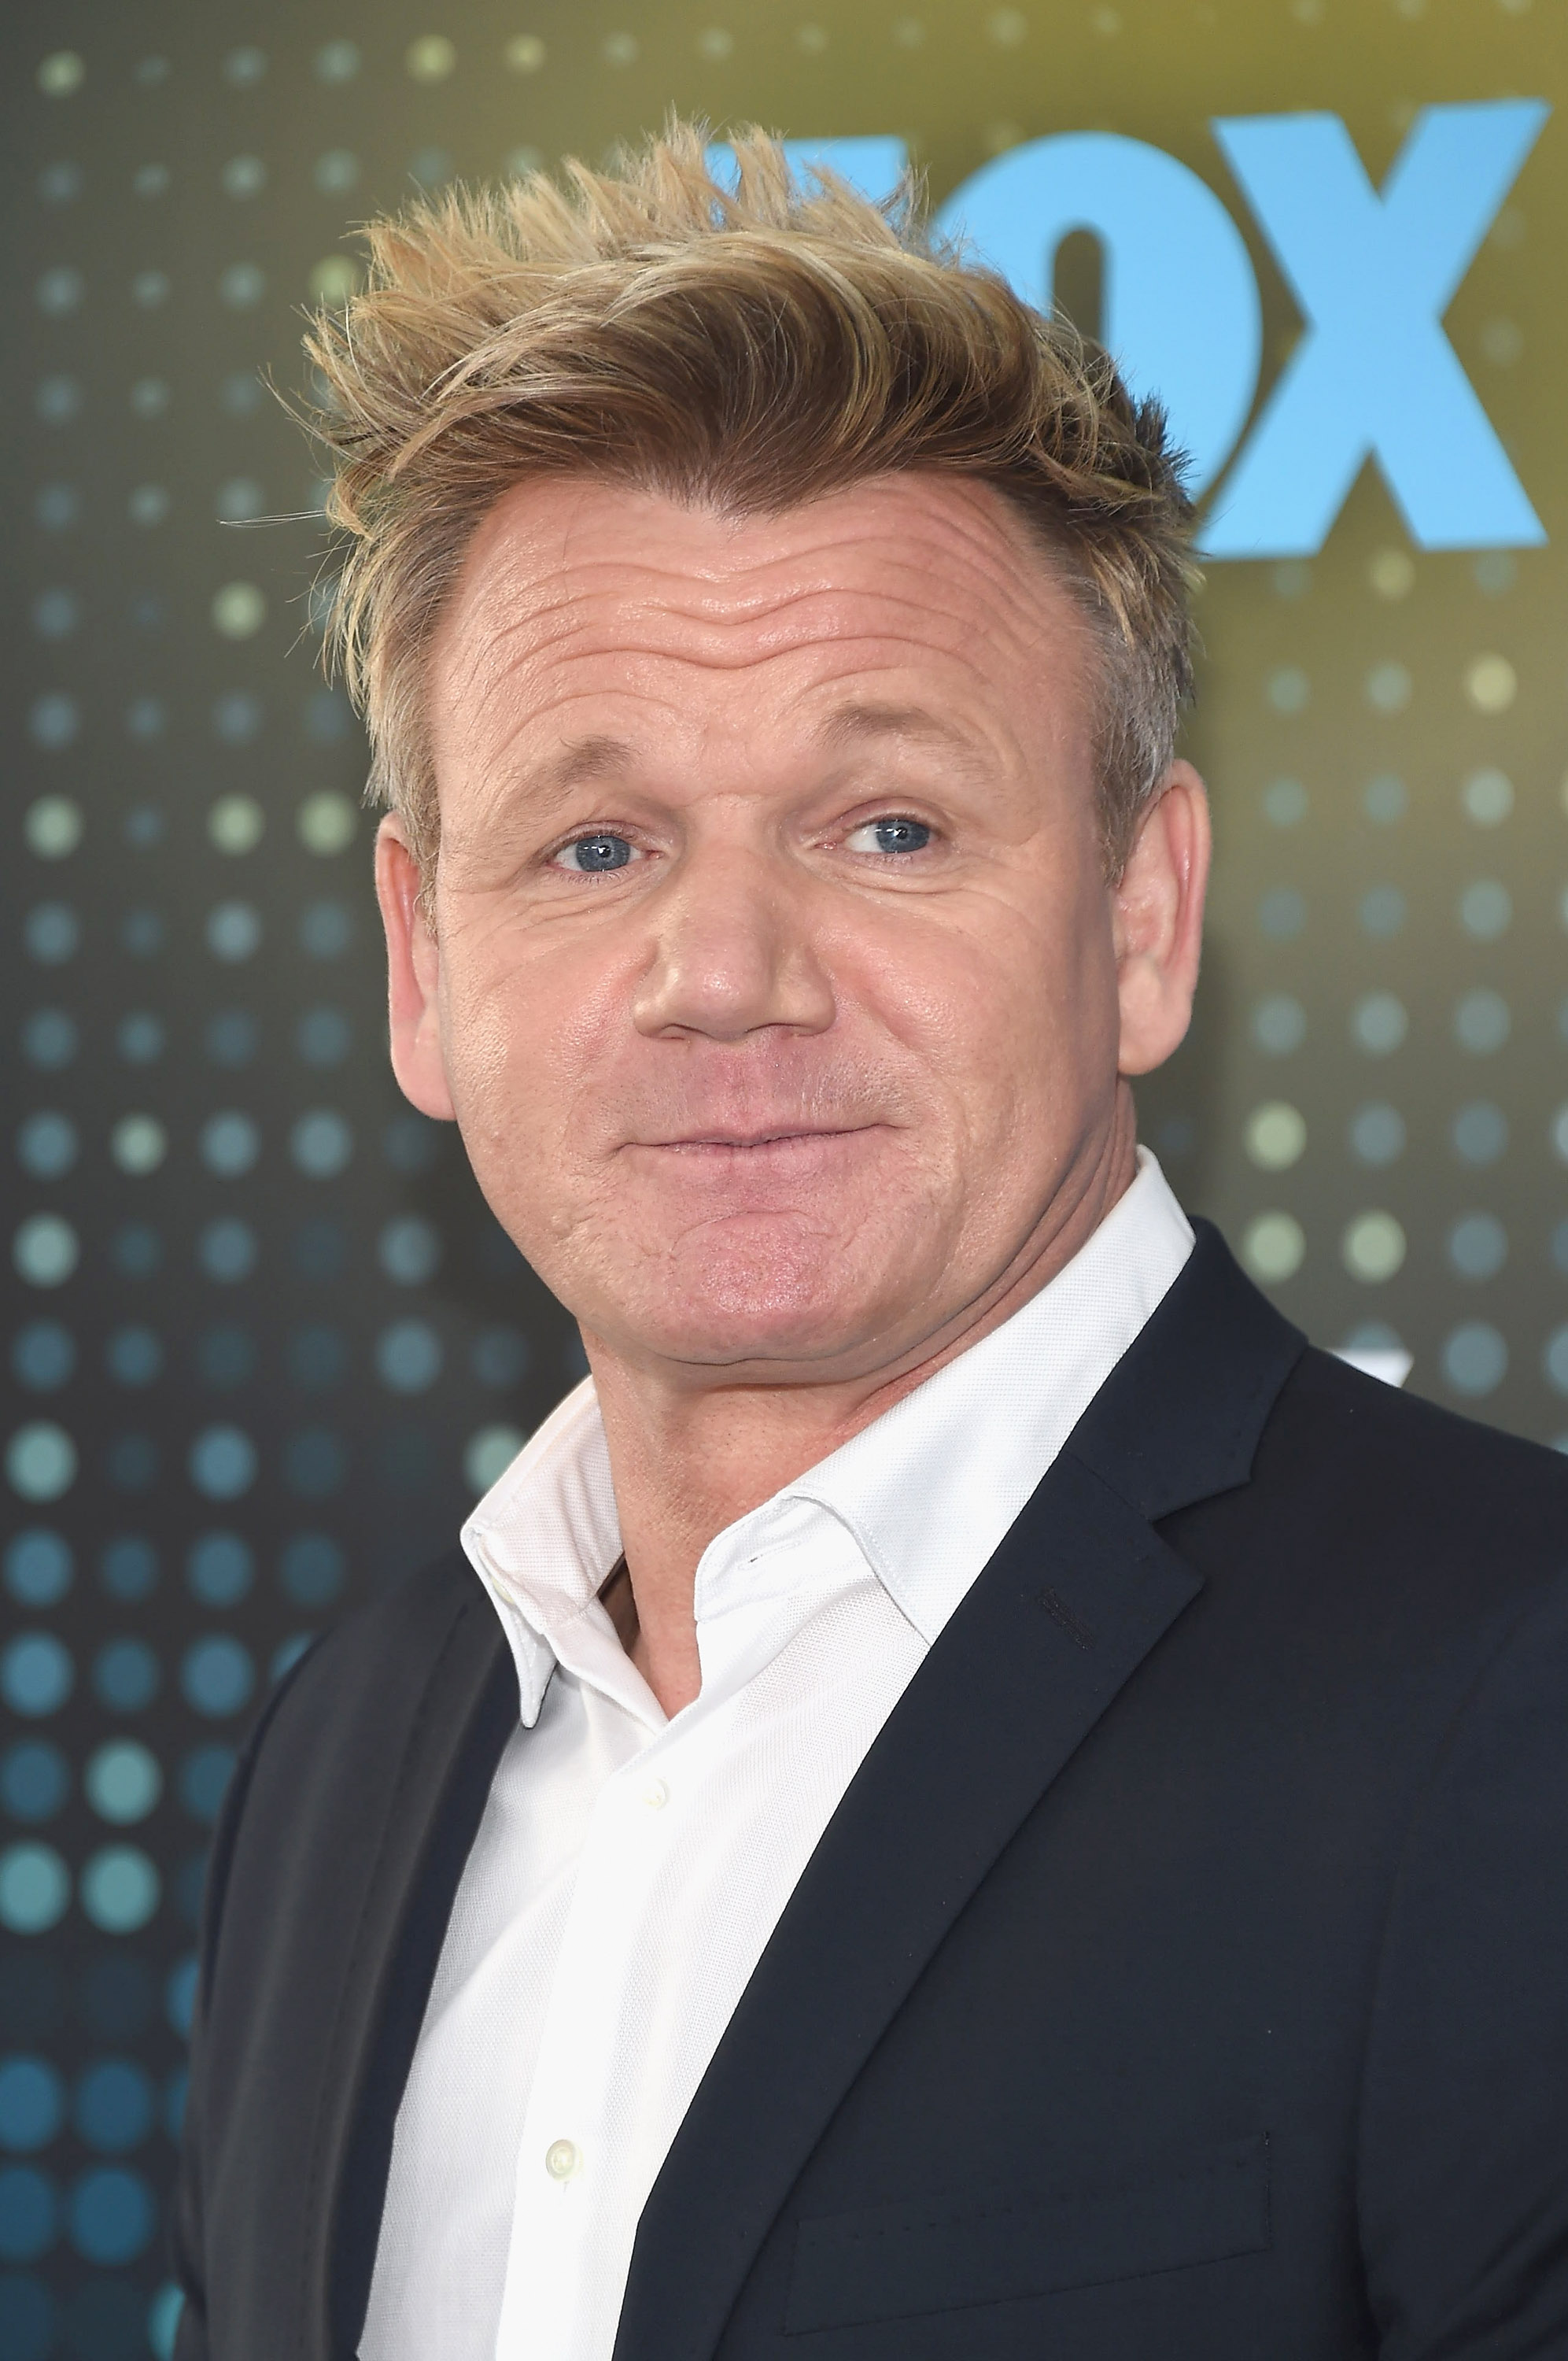 Gordon Ramsay Says Guinea Pigs Are 'Delicious'